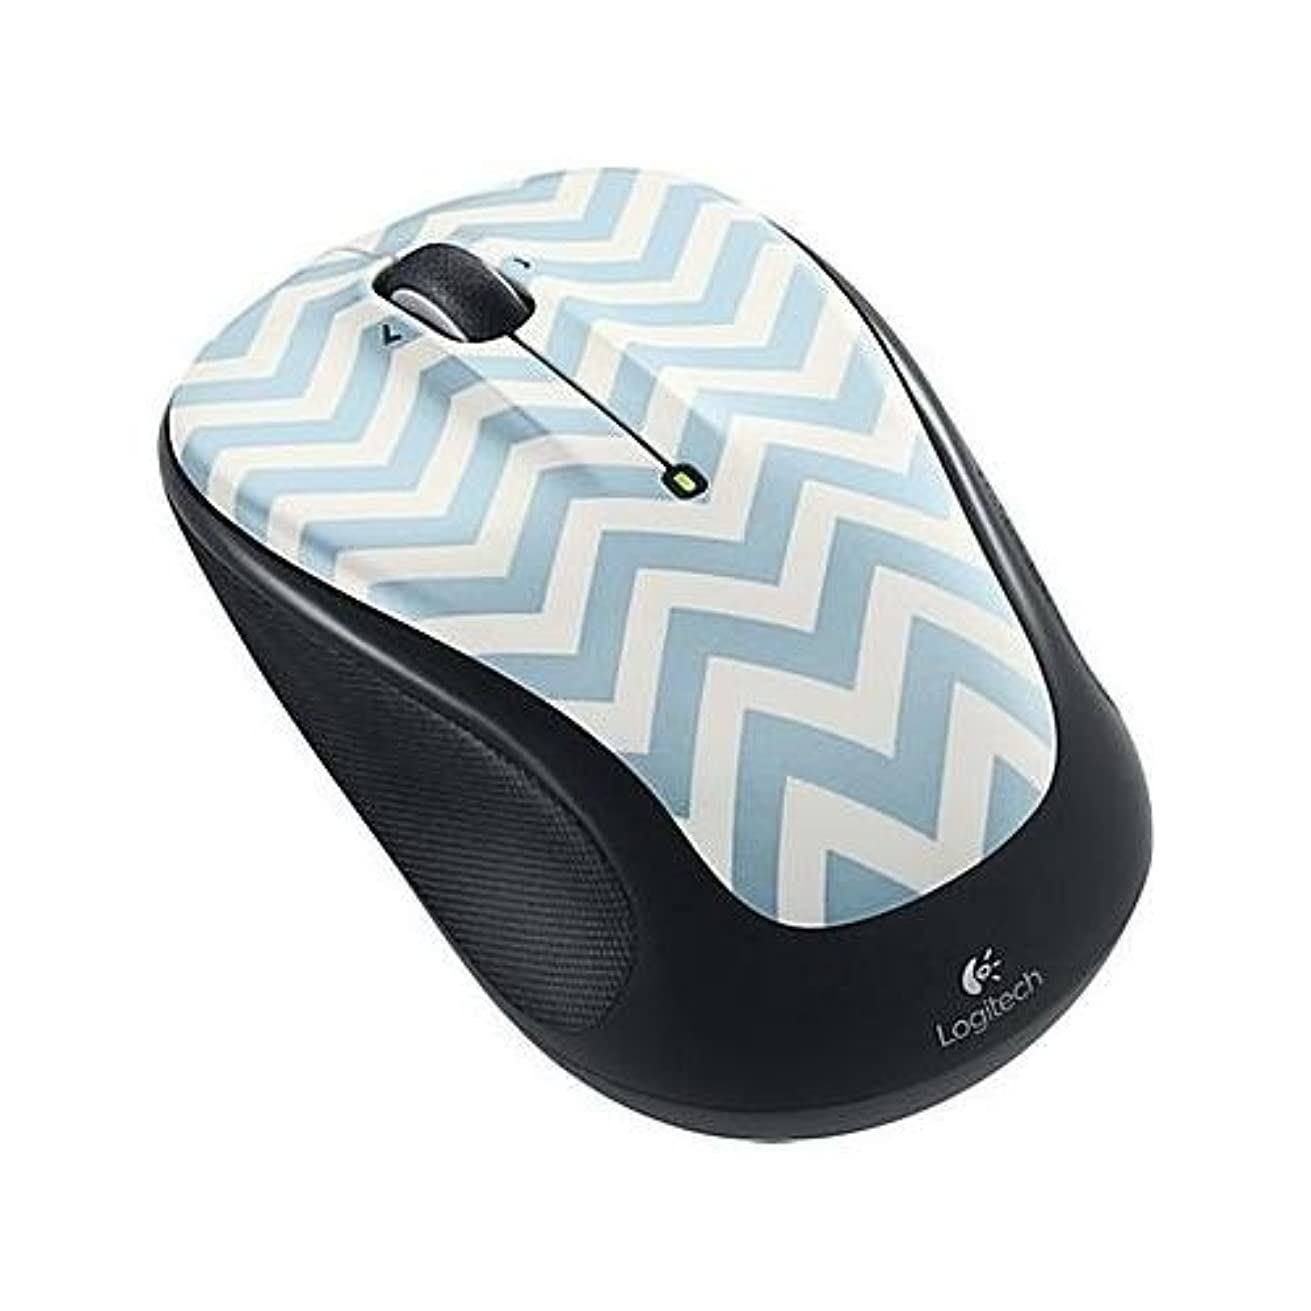 Logitech Wireless Mouse Zany M325 910-004161